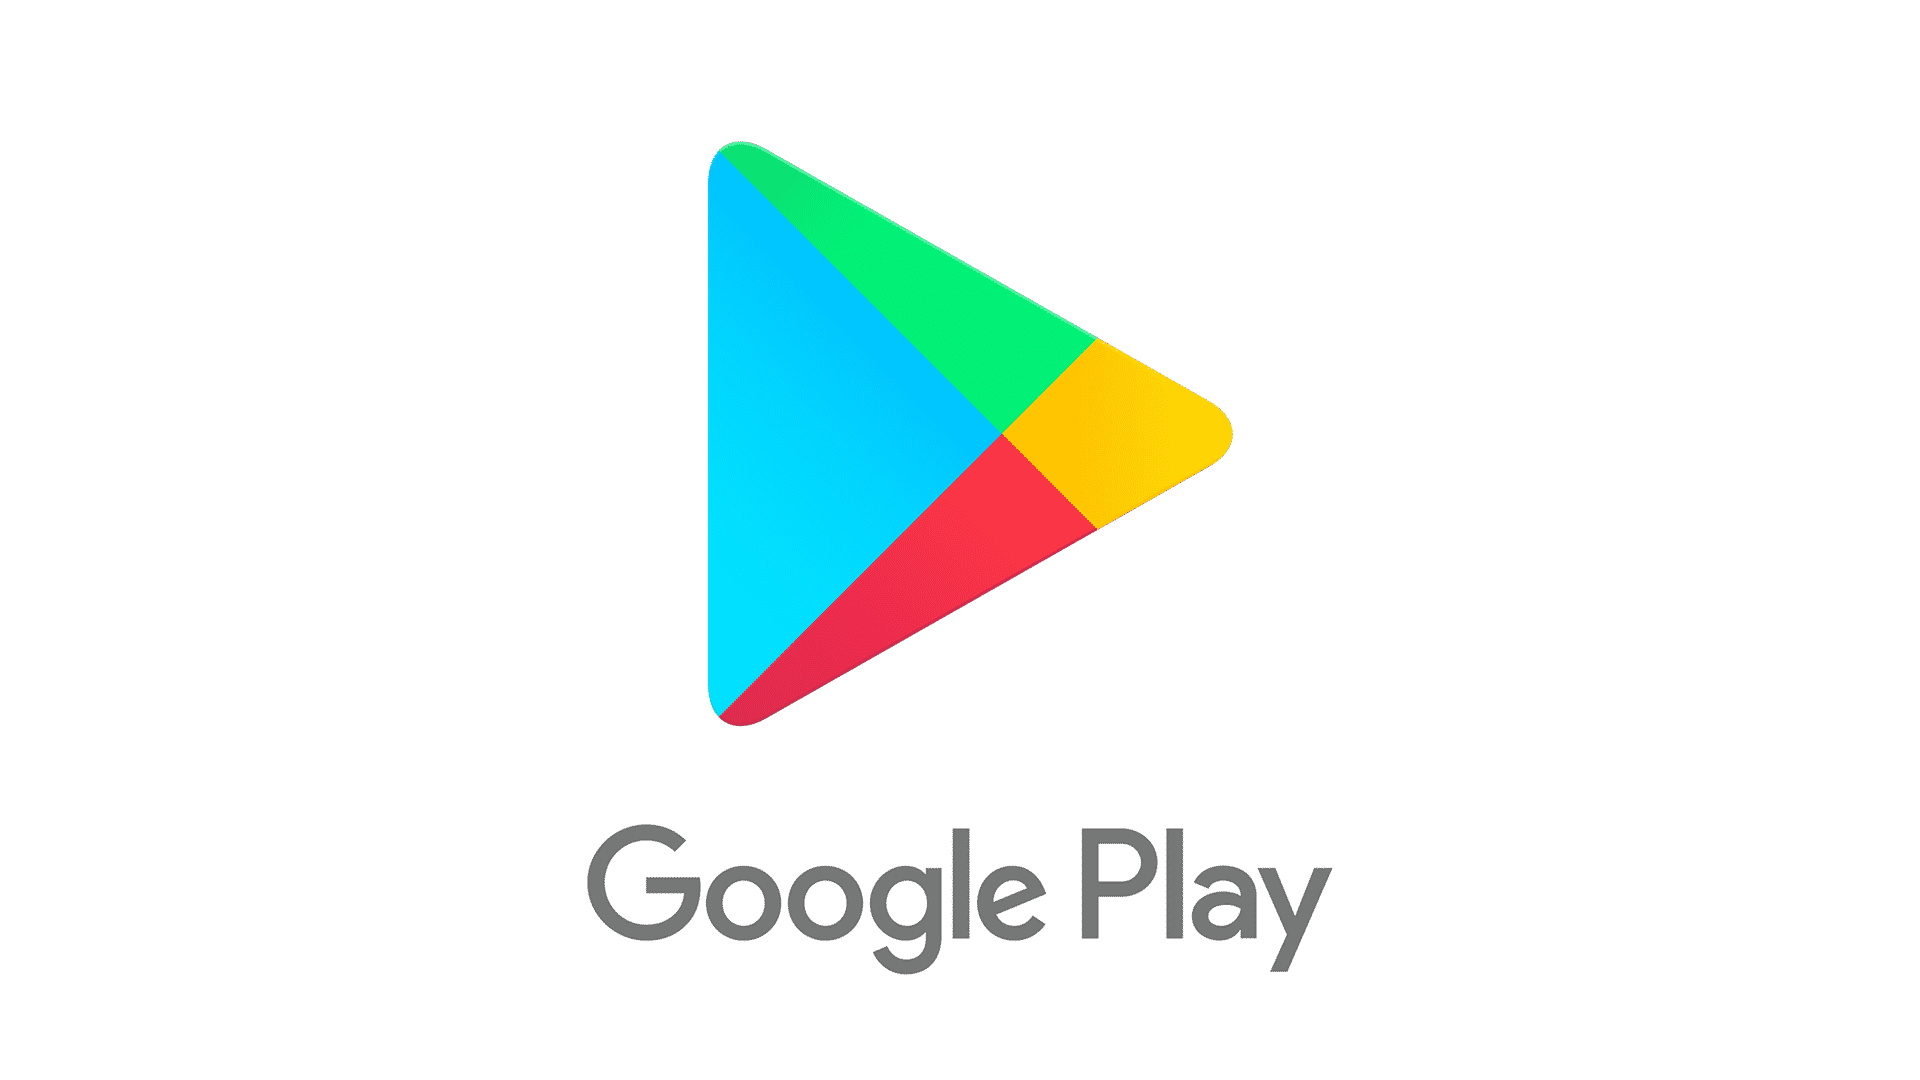 Ad Scheme Found Inside Google Play By A Spin-Off Chinese Developer